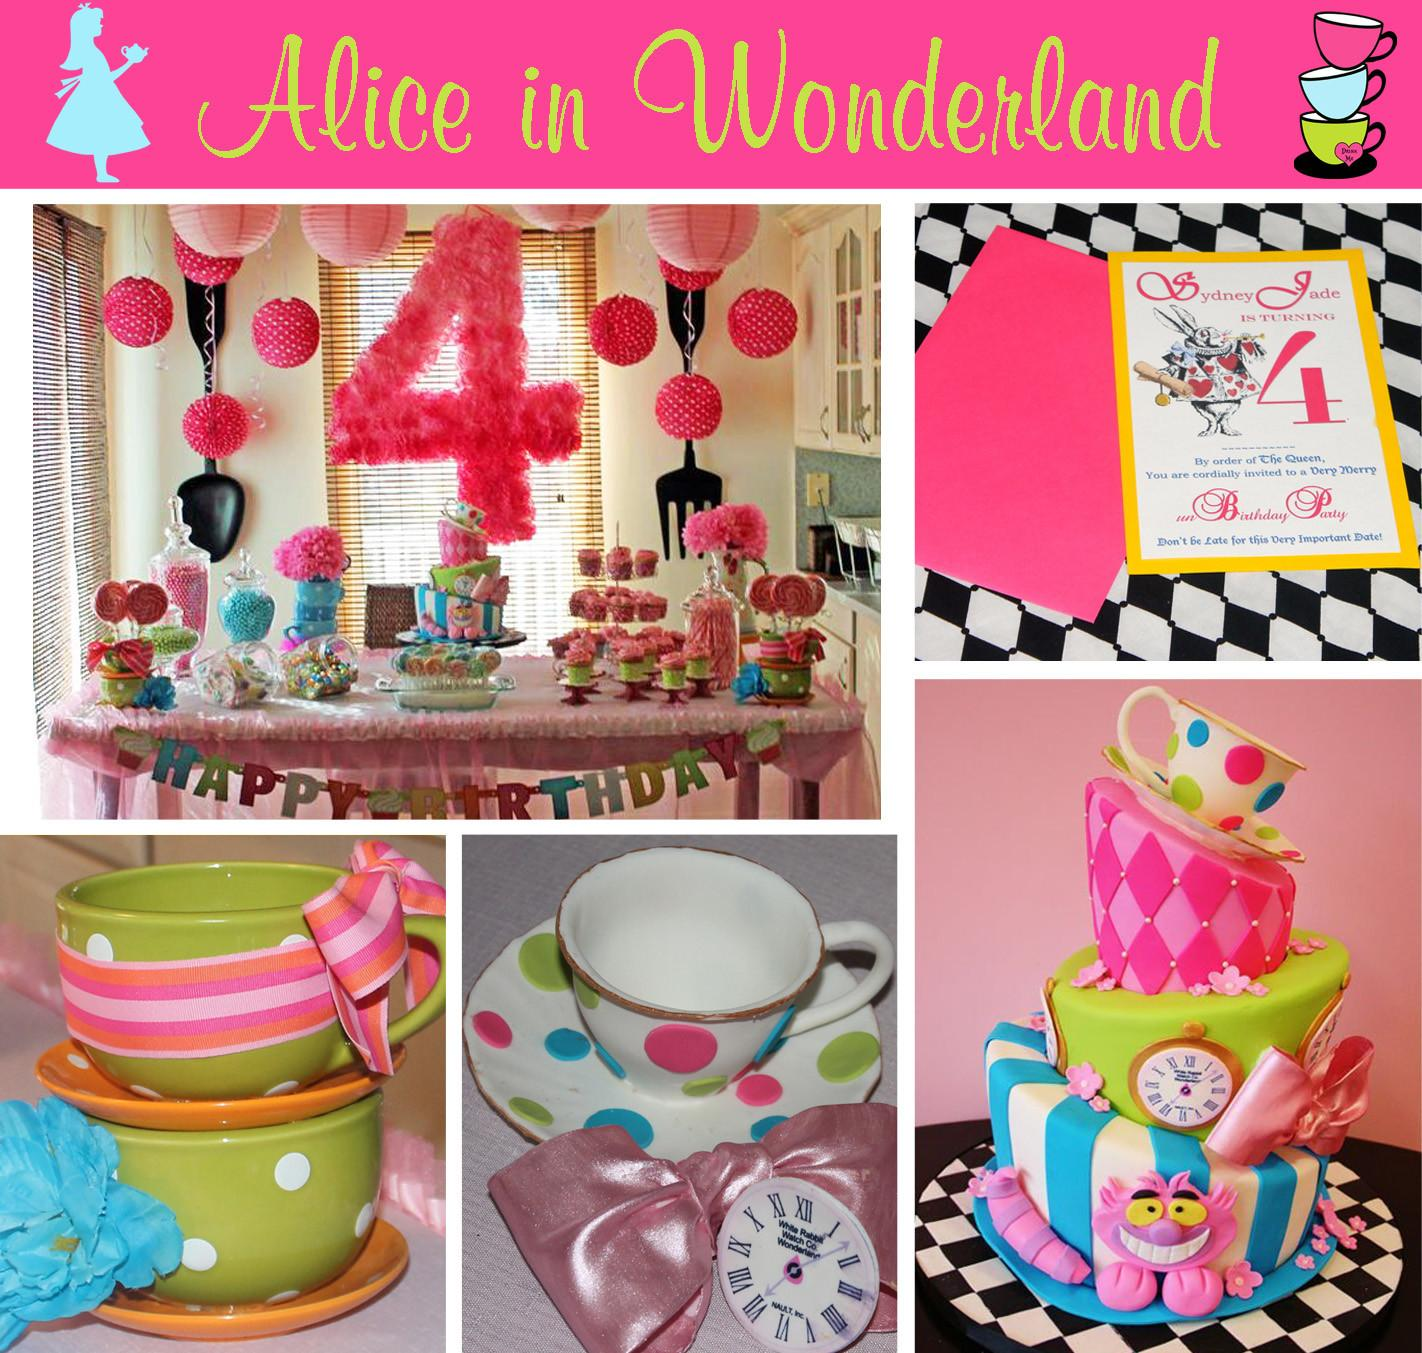 Sydney Alice Wonderland Party